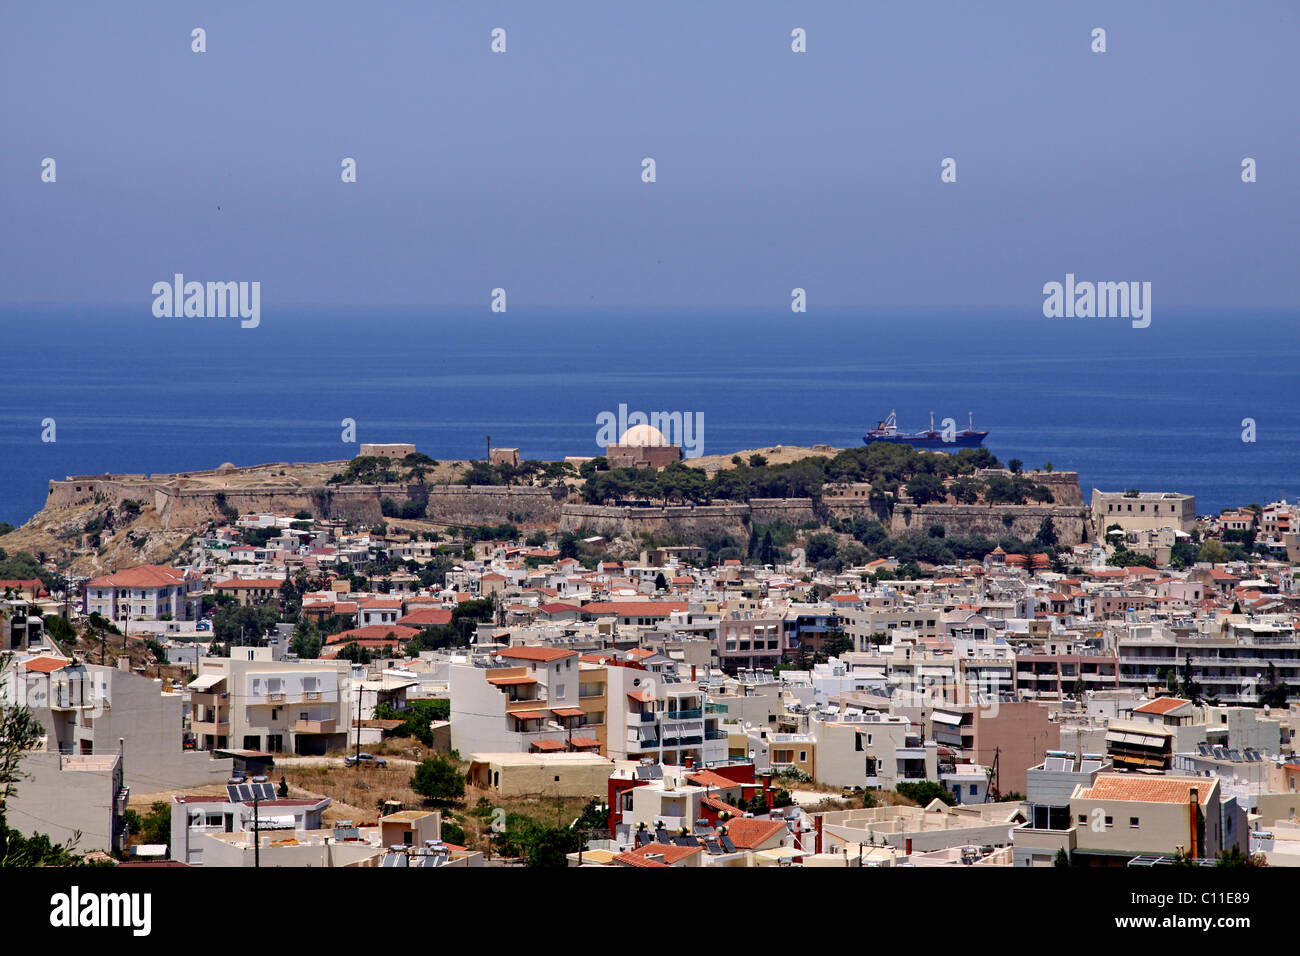 Panoramic view of Rethimno, Rethymno, Venetian Fortezza, fortress in the back, castle, Crete, Greece, Europe Stock Photo